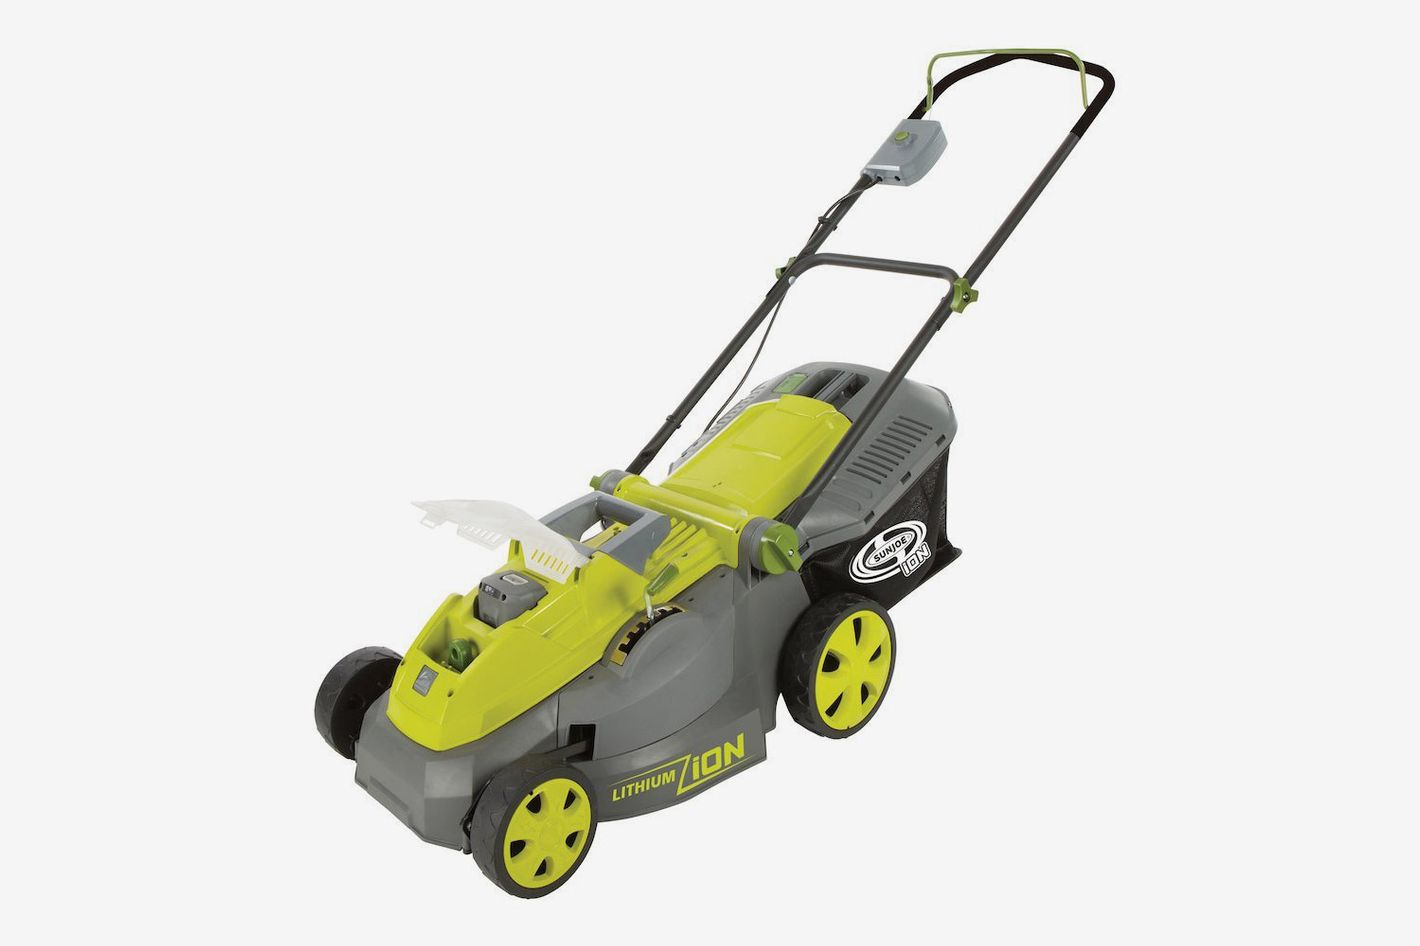 Snow Joe Sun Joe iON16LM 40 V 16-Inch Cordless Lawn Mower With Brushless Motor